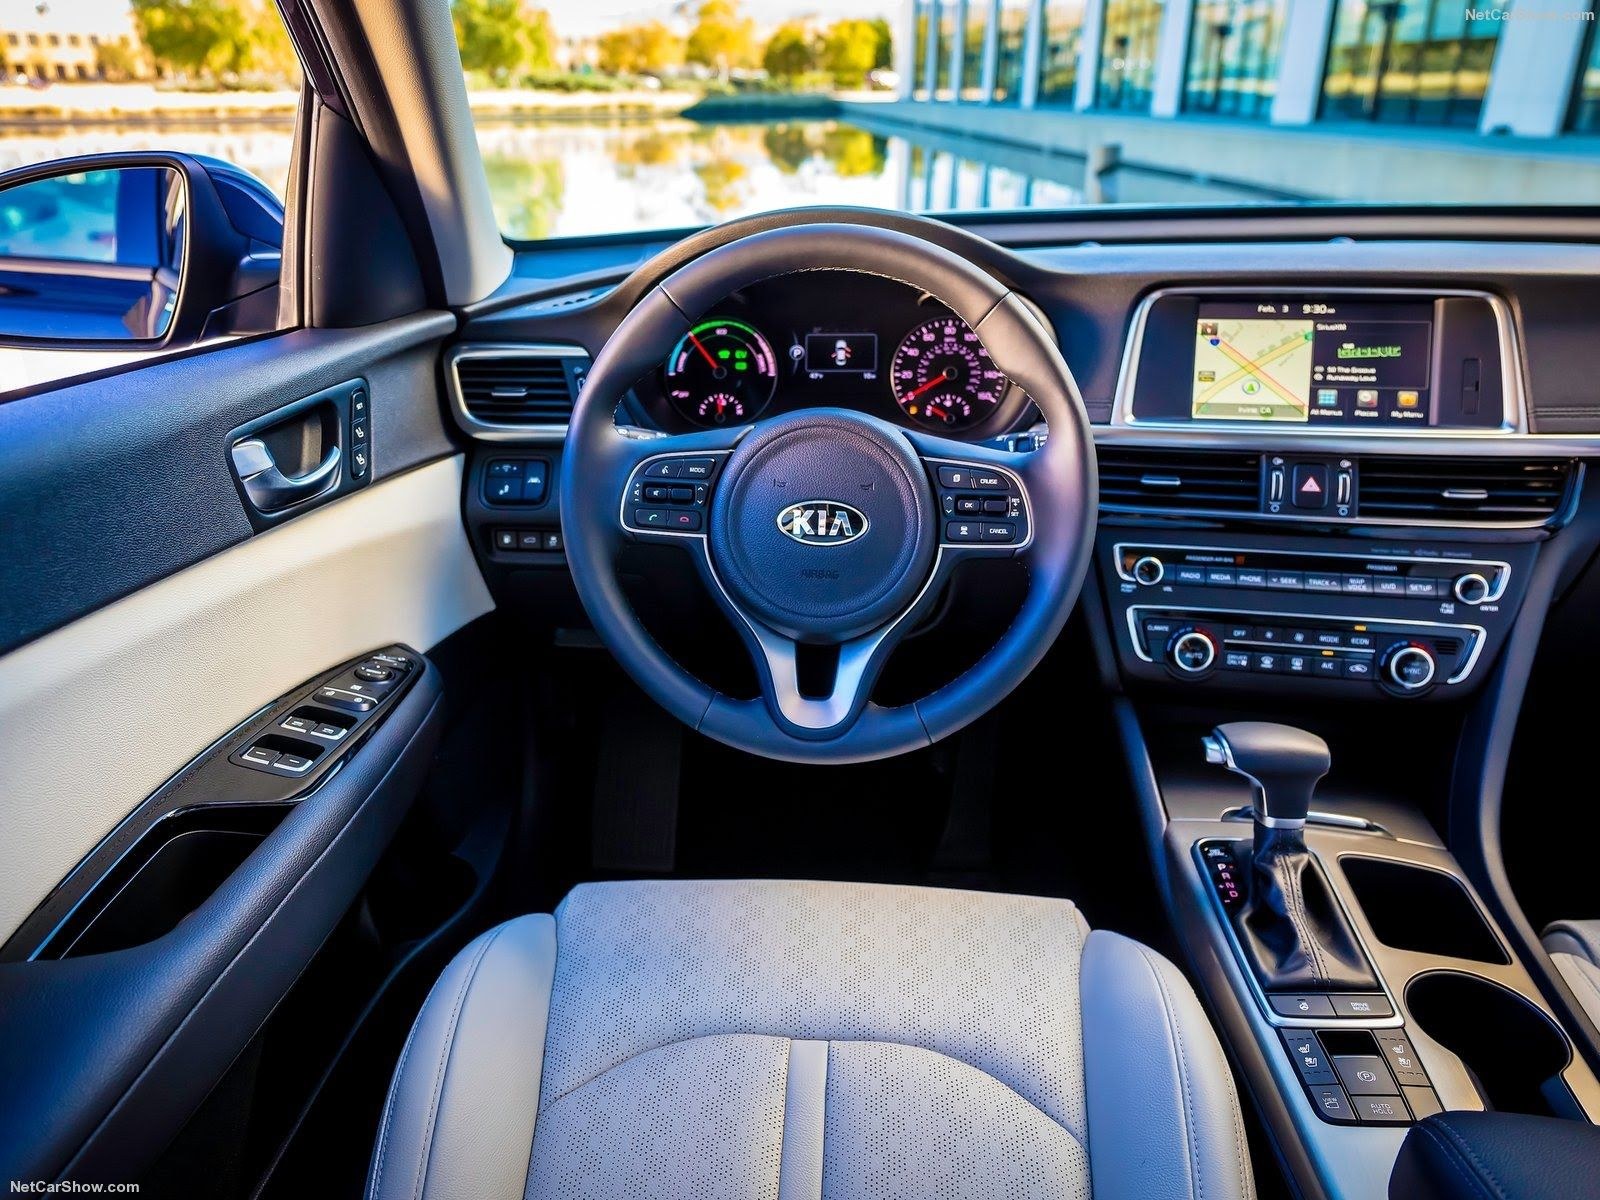 2017 Kia Optima Hybrid Interior Design Bilar